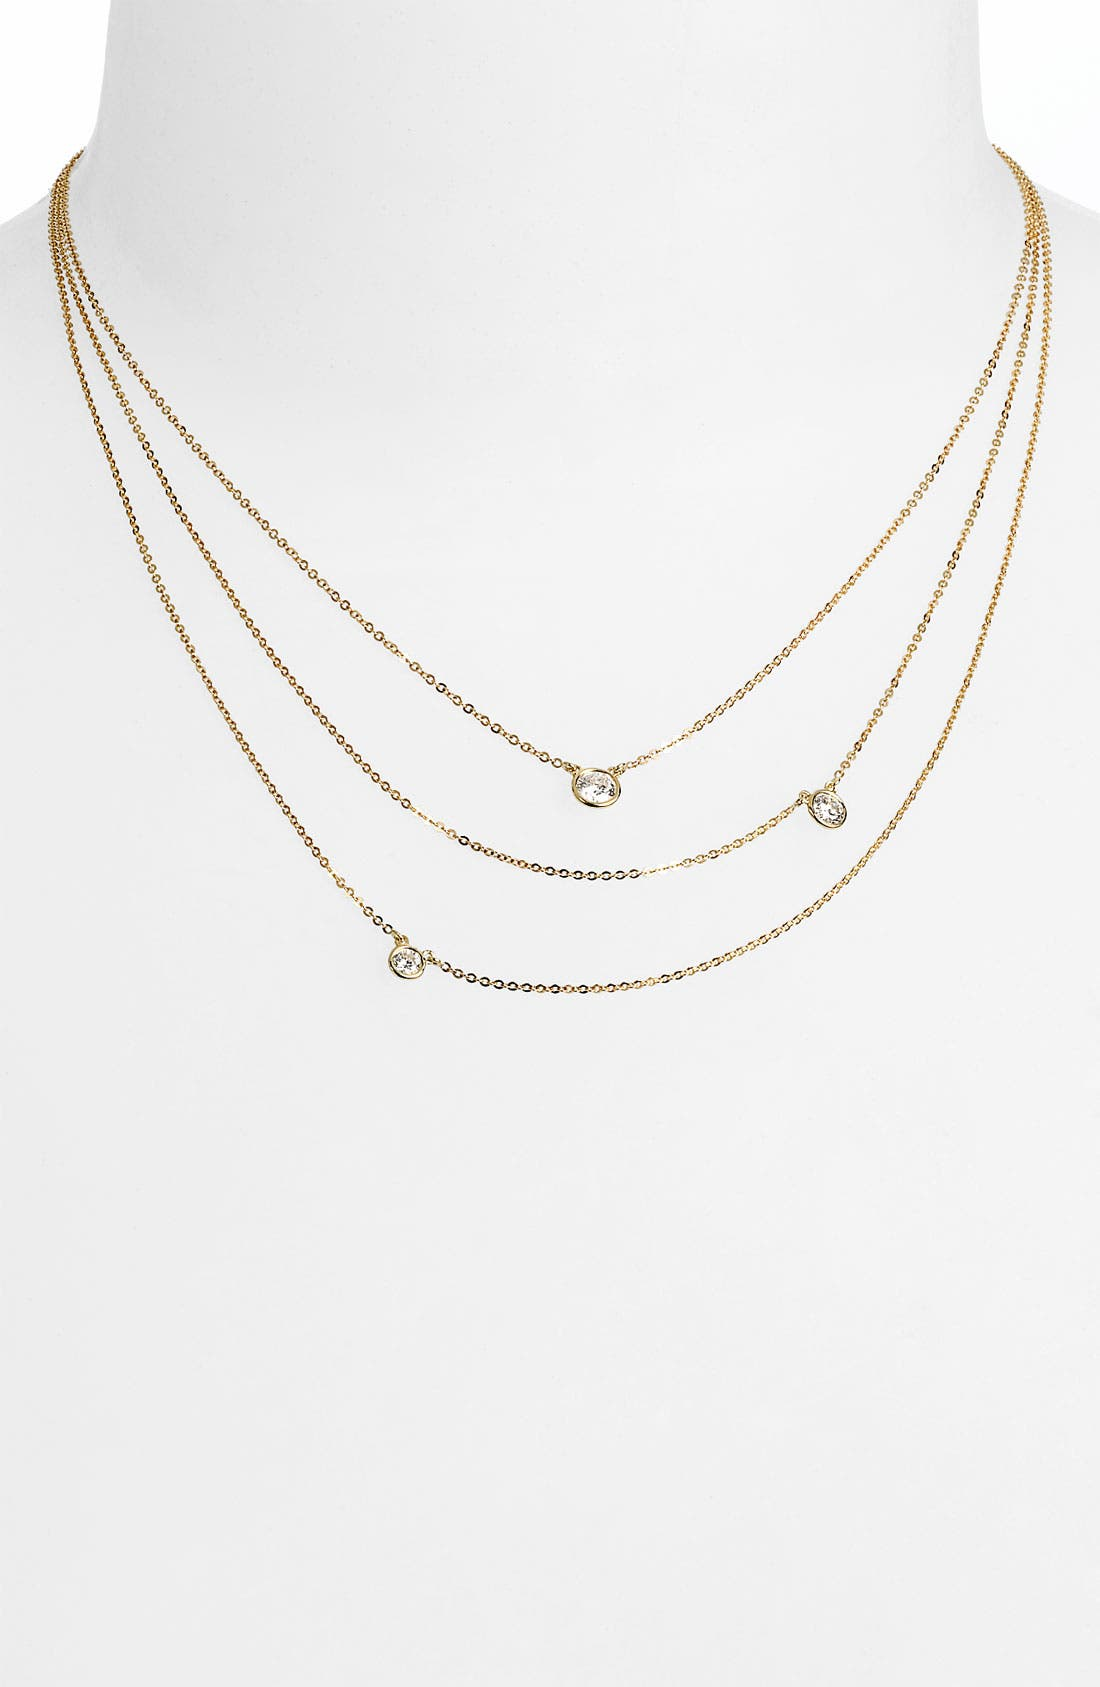 Main Image - Bony Levy 3-Row Diamond Necklace (Nordstrom Exclusive)